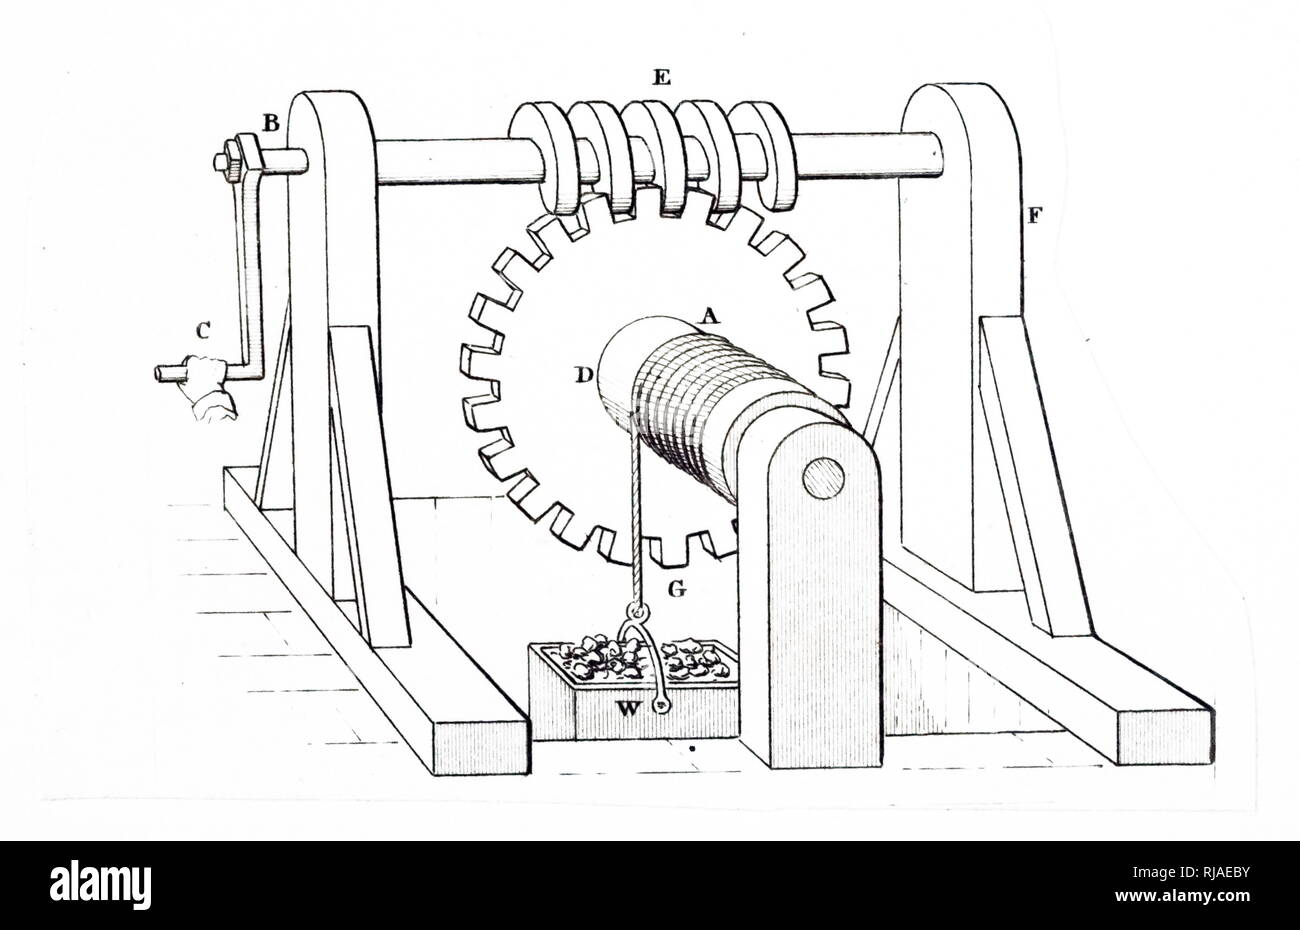 19th century illustration of a windlass for raising weights. A crank handle turns a shaft carrying a screw which links a toothed wheel to a drum. The windlass is an apparatus for moving heavy loads. Typically, a windlass consists of a horizontal cylinder (barrel), which is rotated by the turn of a crank or belt. A winch is affixed to one or both ends, and a cable or rope is wound around the winch, pulling a weight attached to the opposite end - Stock Image